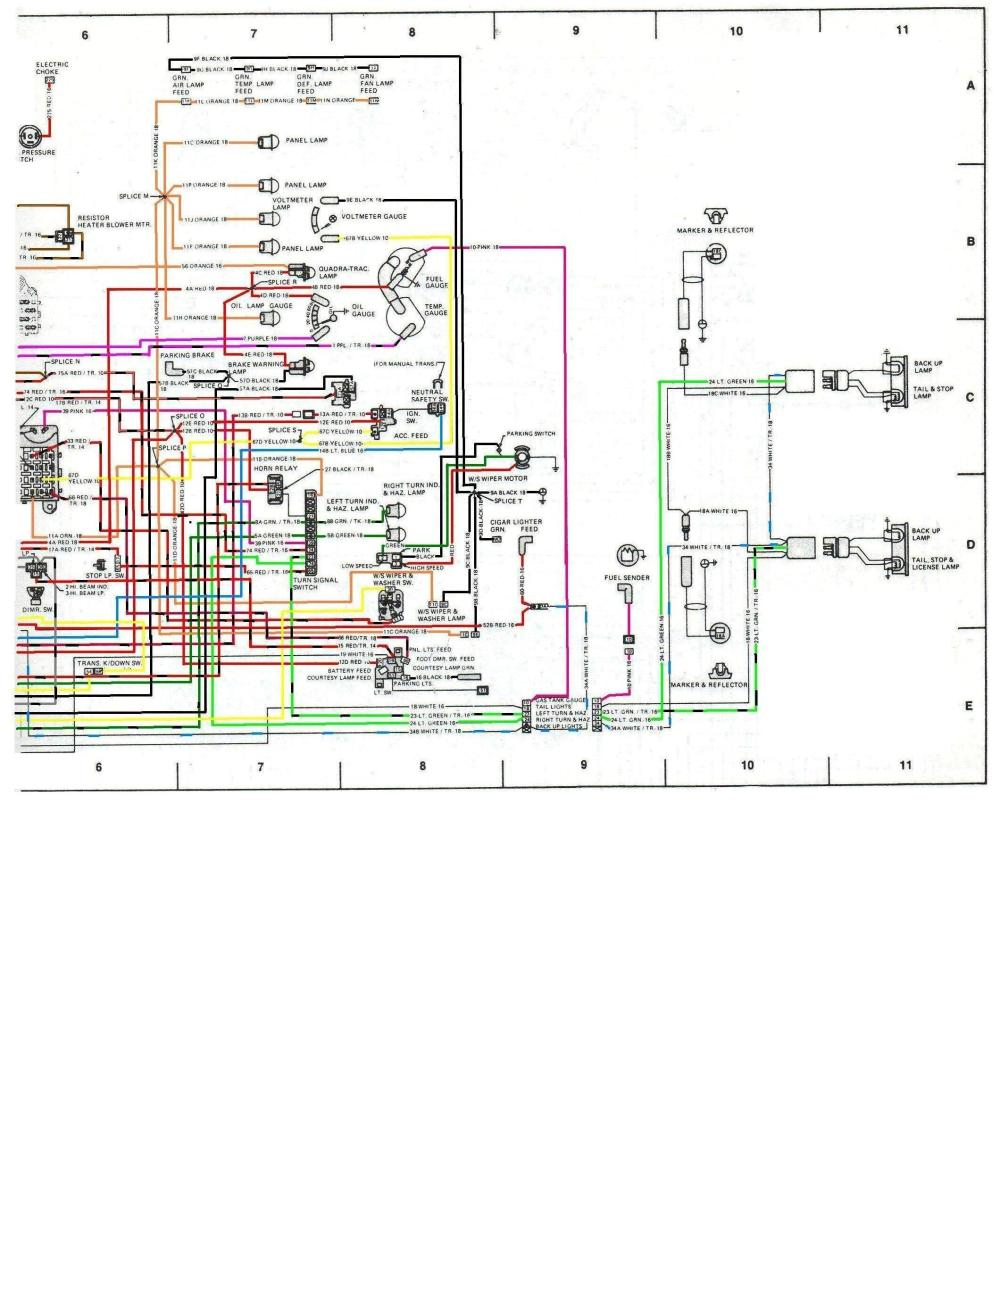 medium resolution of wiring diagram jeep cj7 simple wiring schema jeep wiring diagram 1986 jeep wrangler wiring diagram wiring